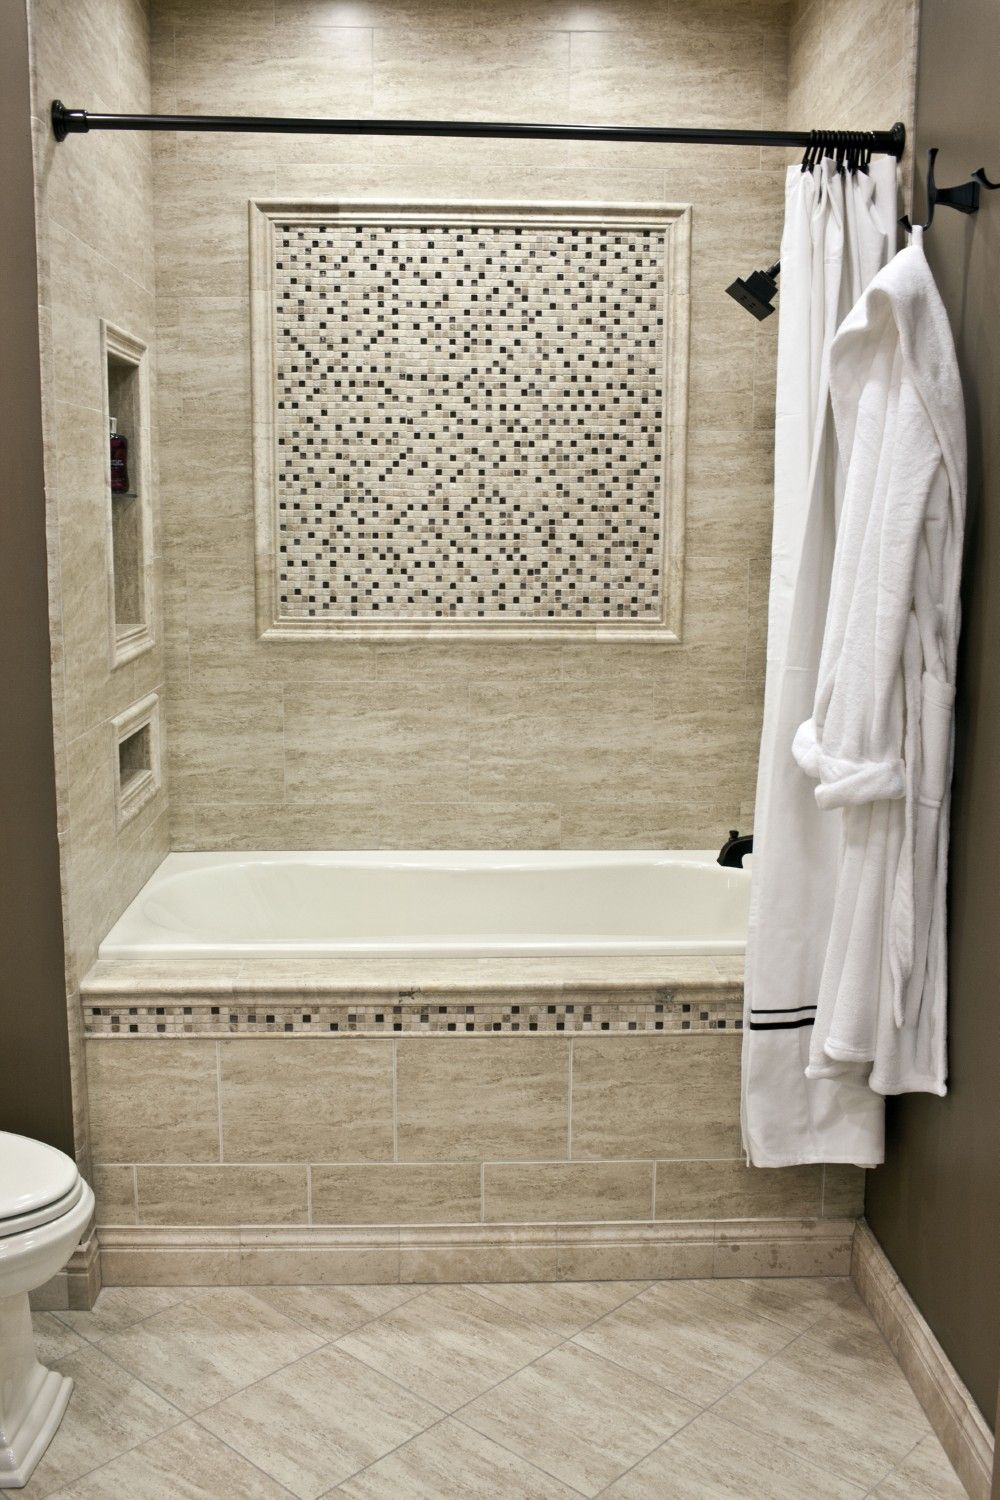 Amazing Cozy Small Bathroom Shower With Tub Tile Design Ideas Best Bathroom Ceramic Wall Tile Design 2018